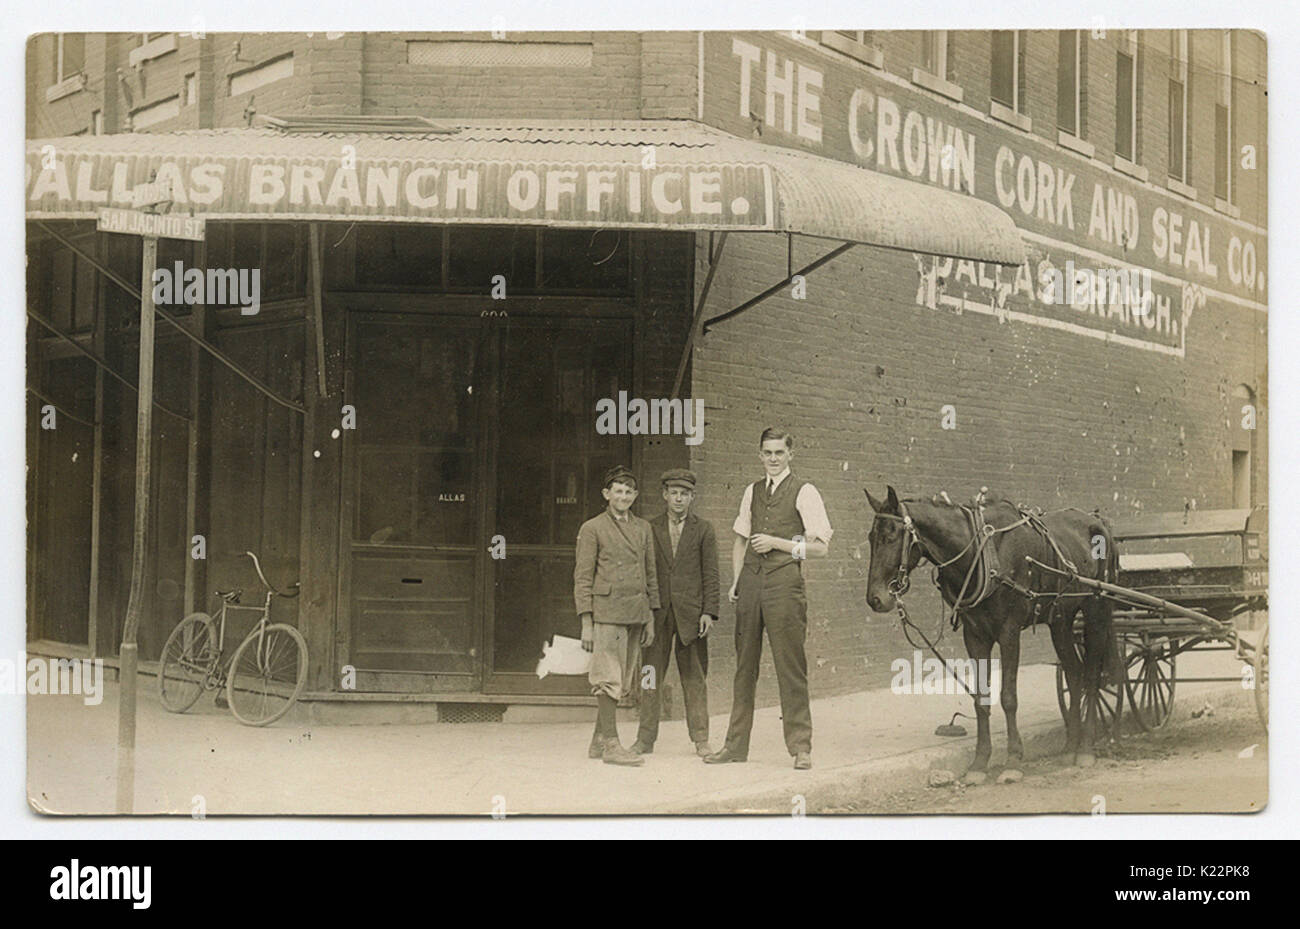 The Crown Cork and Seal Co., Dallas Branch - Stock Image